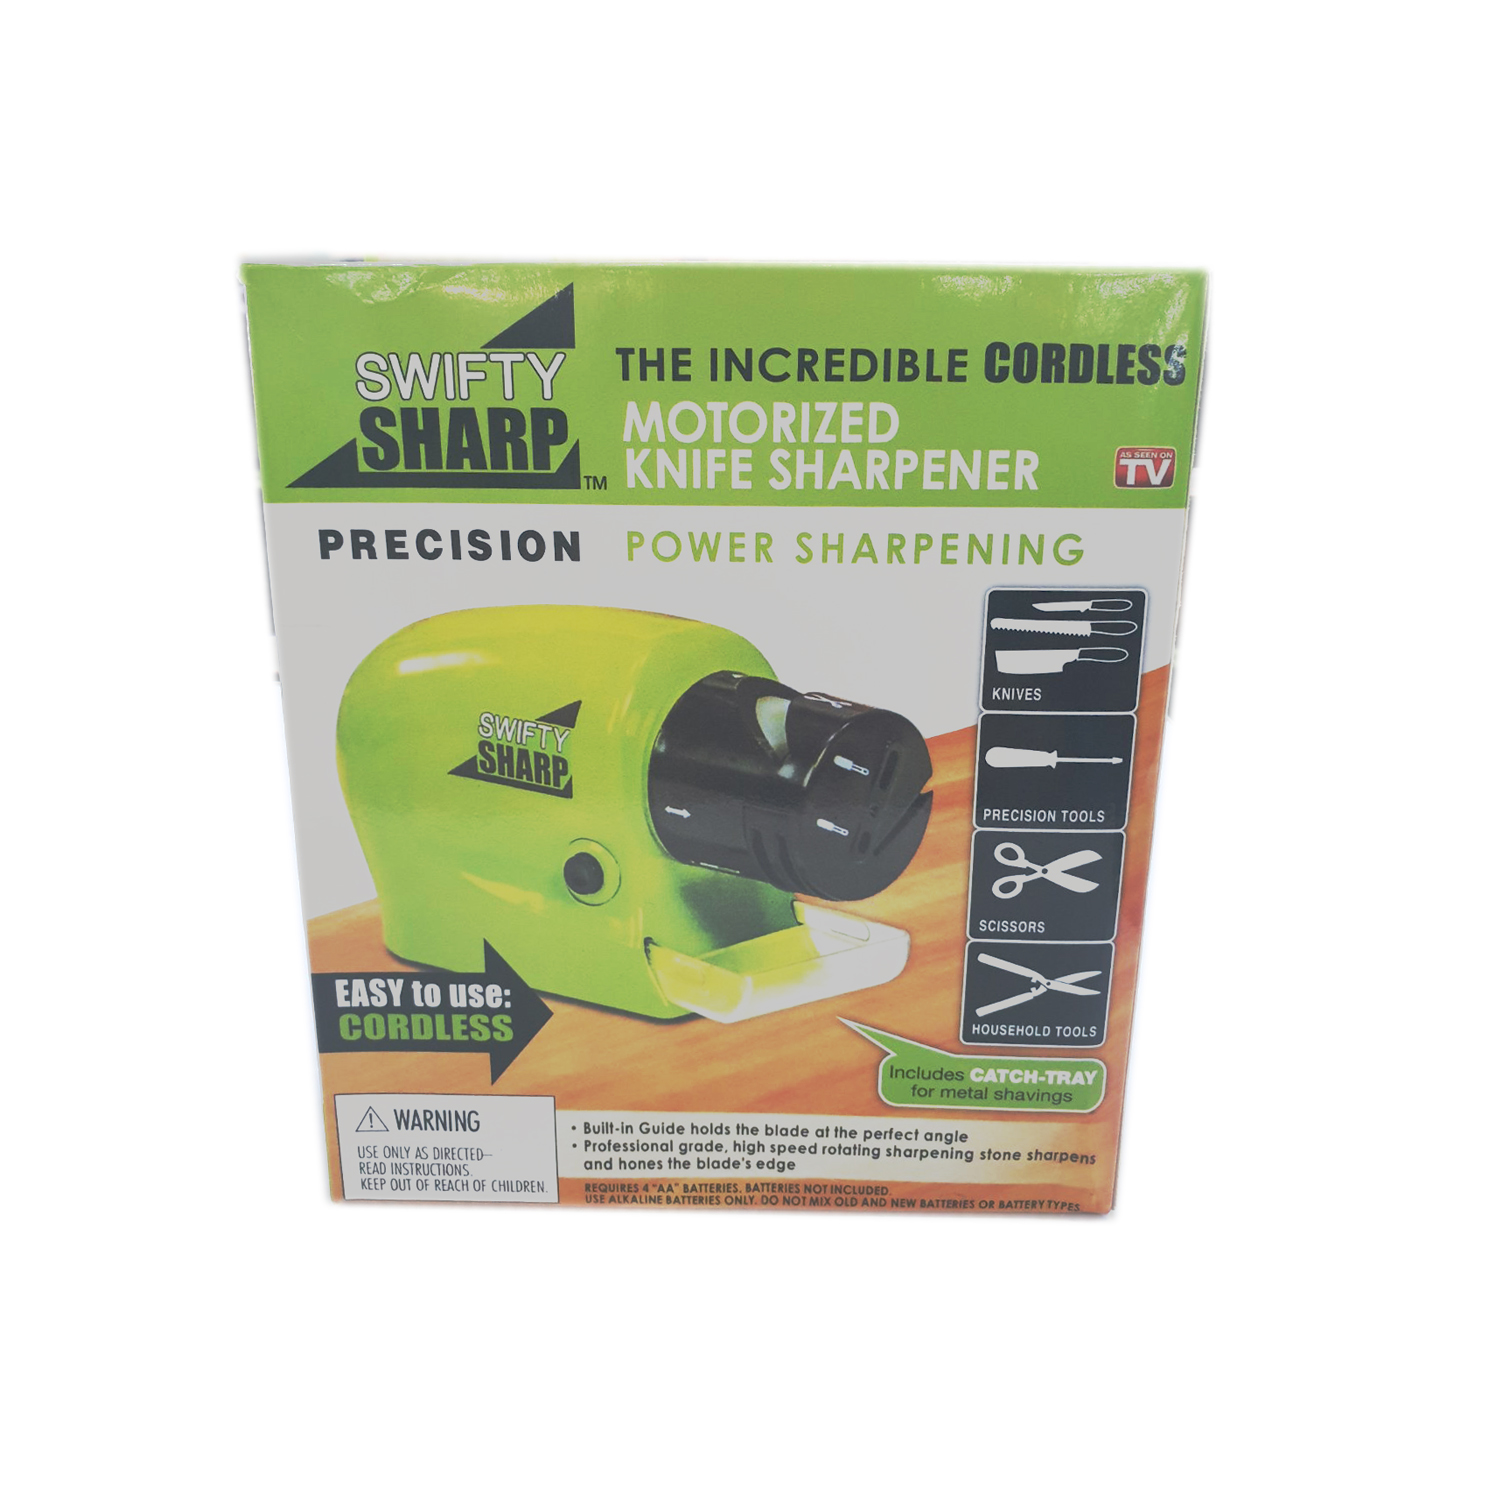 B/O Knife Sharpener #31801.0760.21